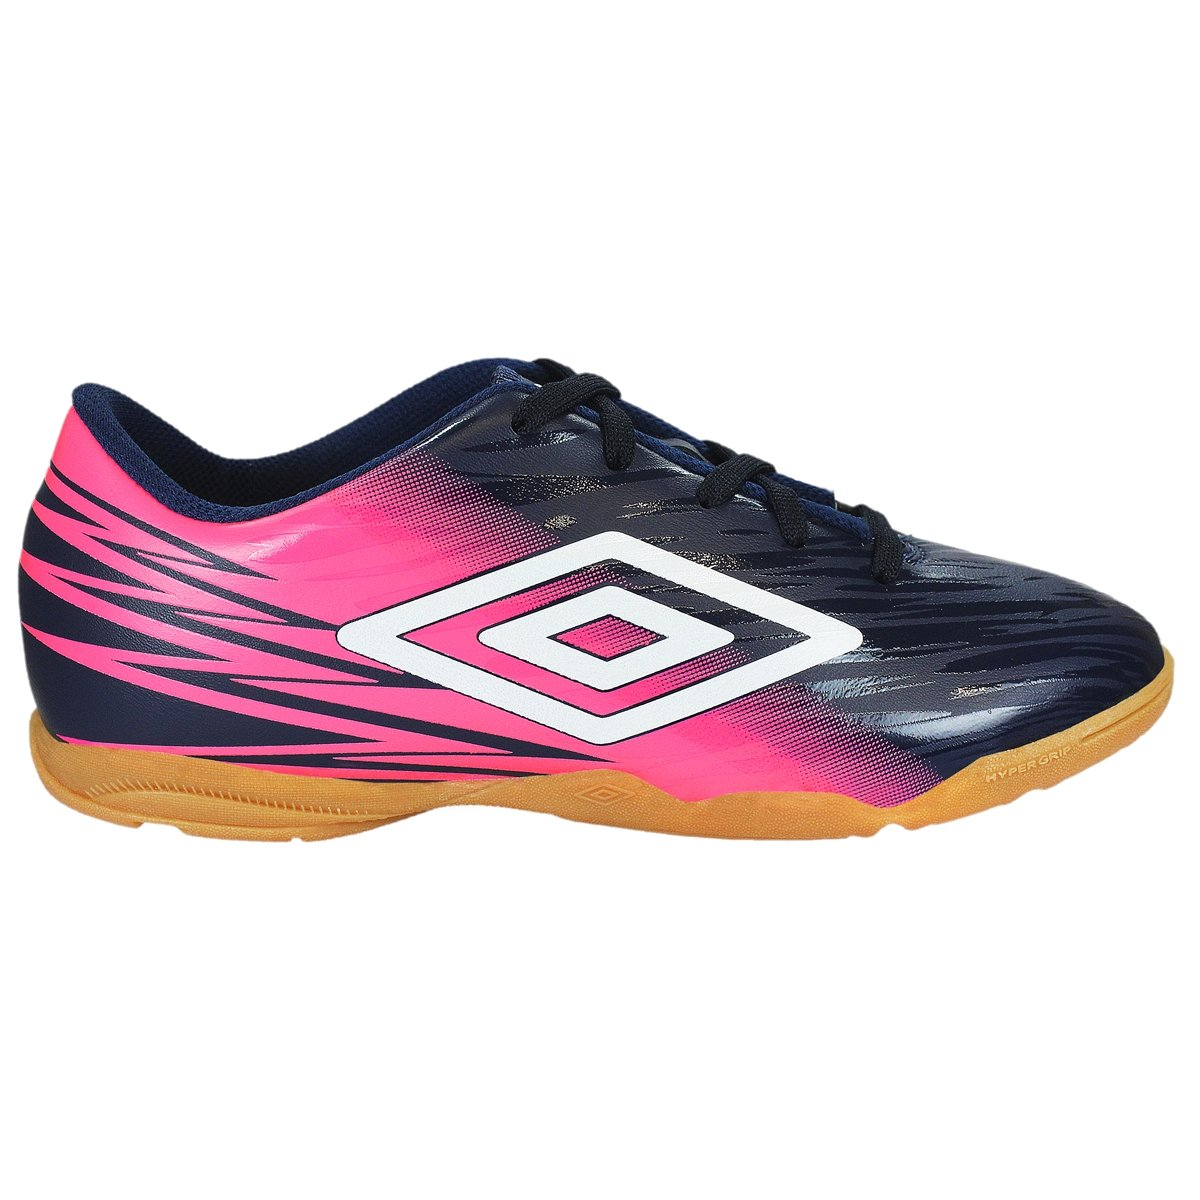 8334476f21 CHUTEIRA FUTSAL UMBRO HIT INDOOR FEMININA IN